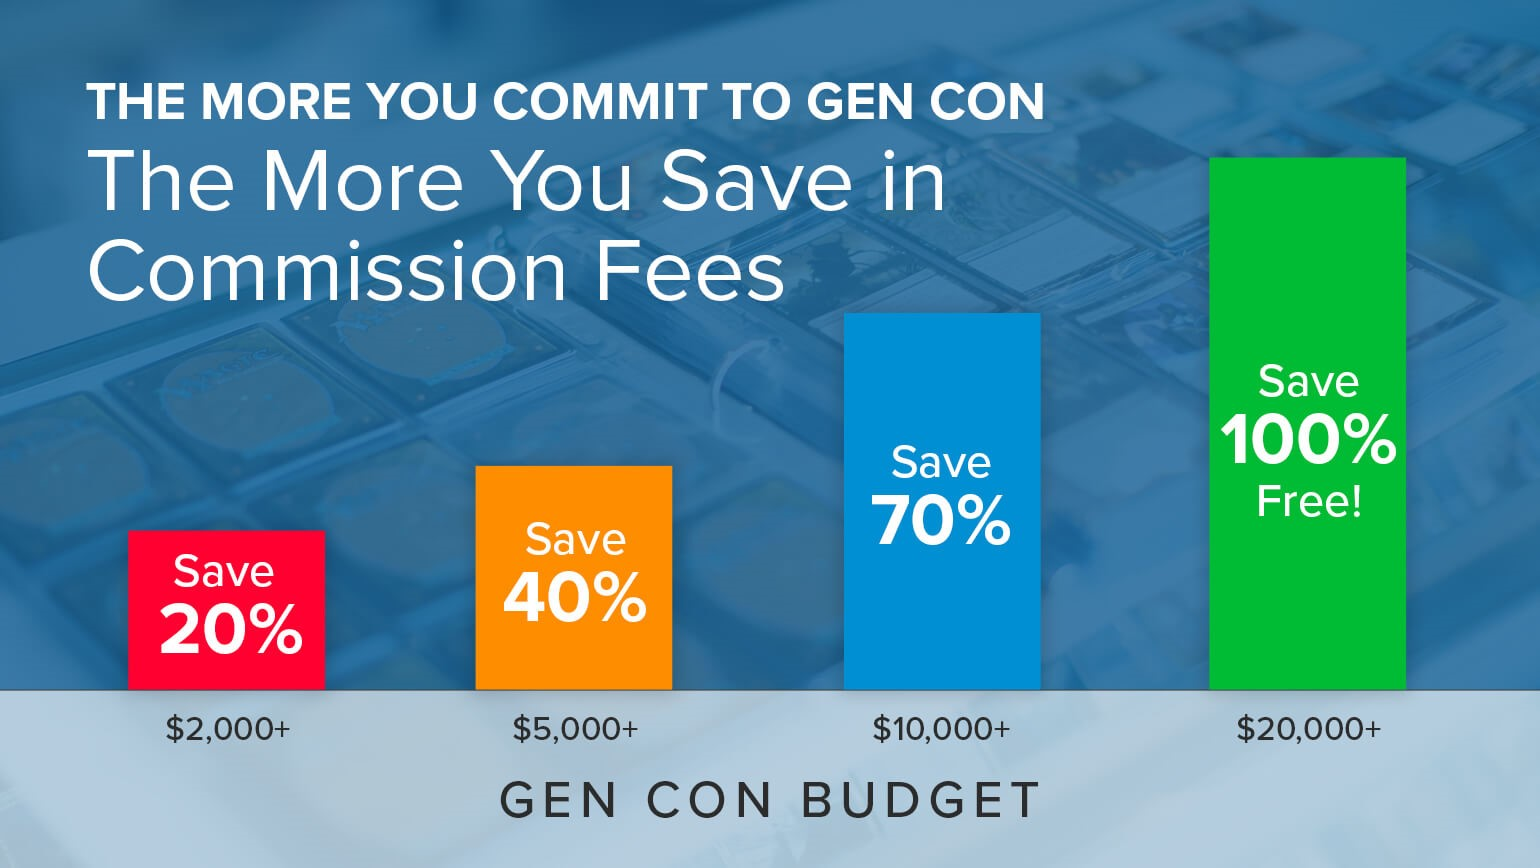 Take Advantage of Our Gen Con Buylist Kickback